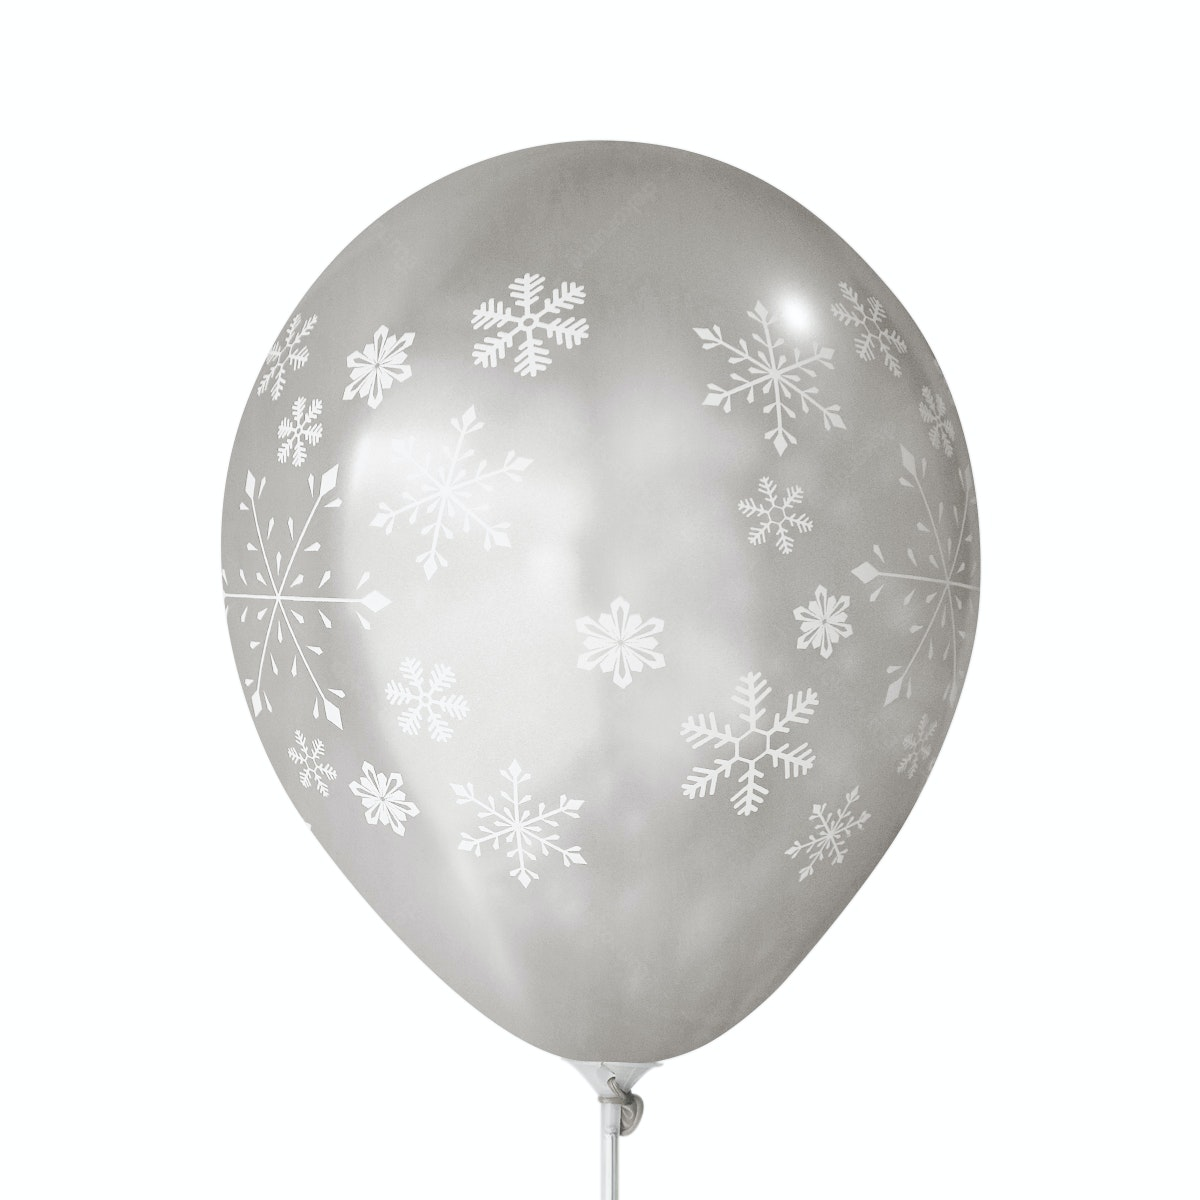 Adalima Balloon Balon Latex Snow Flakes Silver QQ